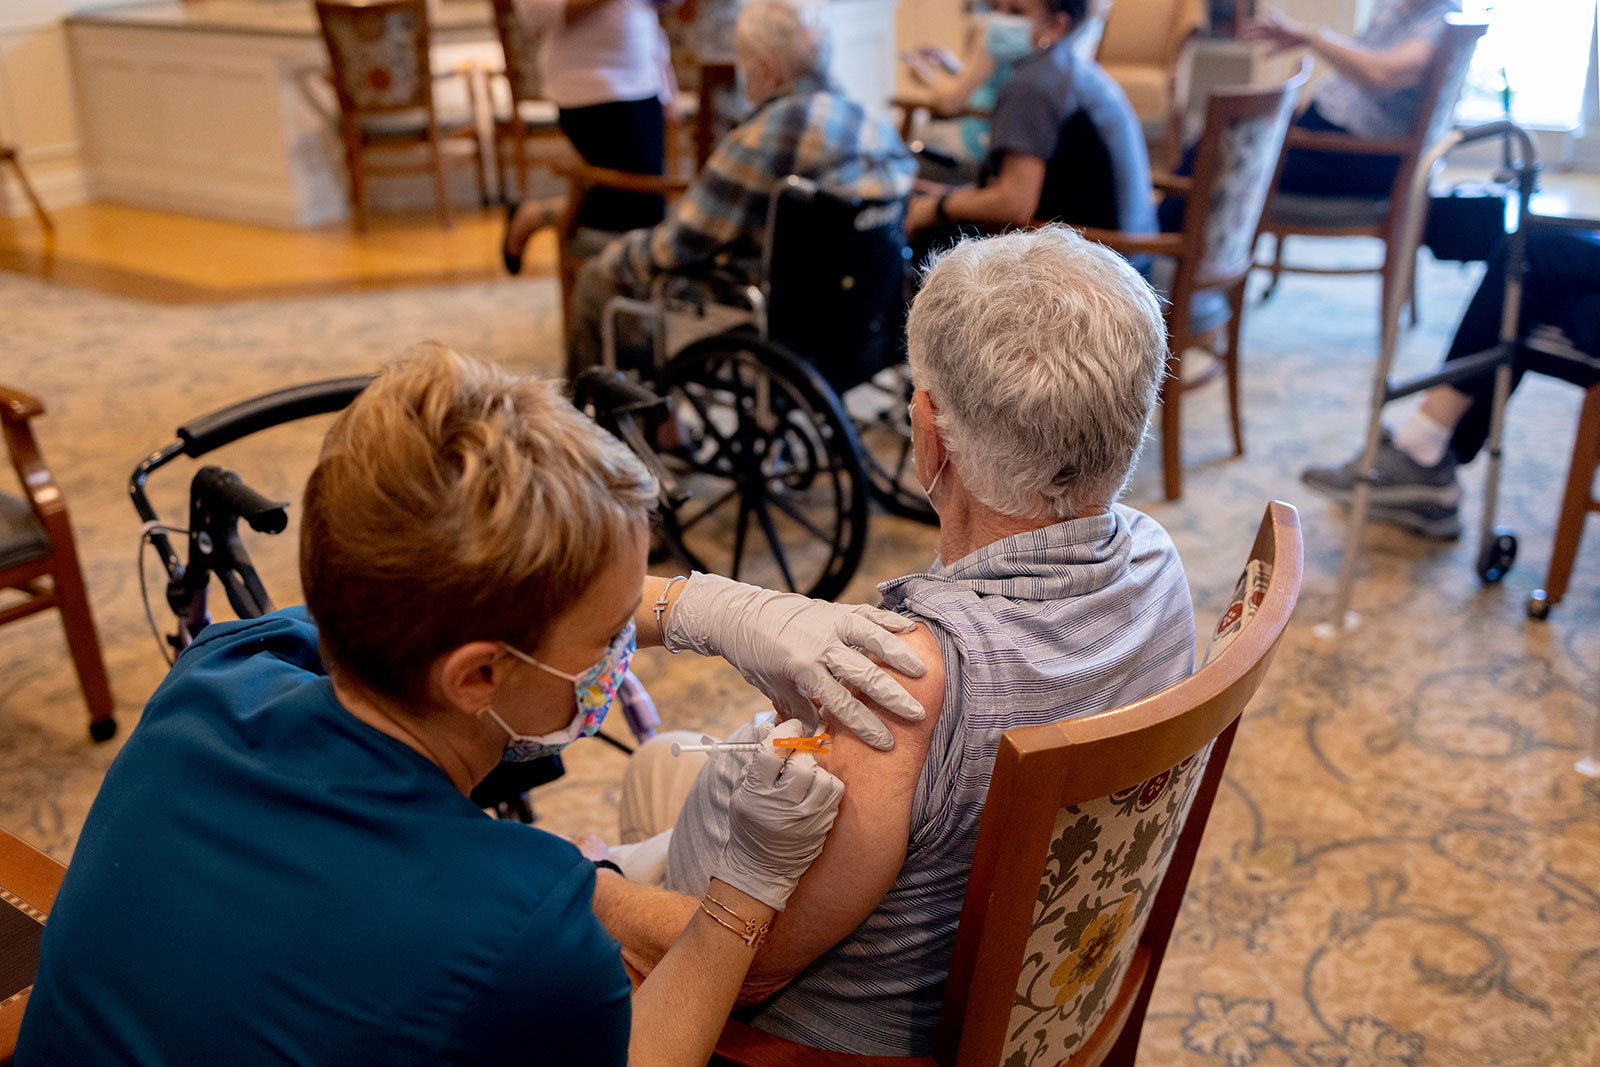 A healthcare worker administers a booster shot of the Pfizer/BioNTech Covid-19 vaccine at a senior living facility in Worcester, Pennsylvania, on August 25.